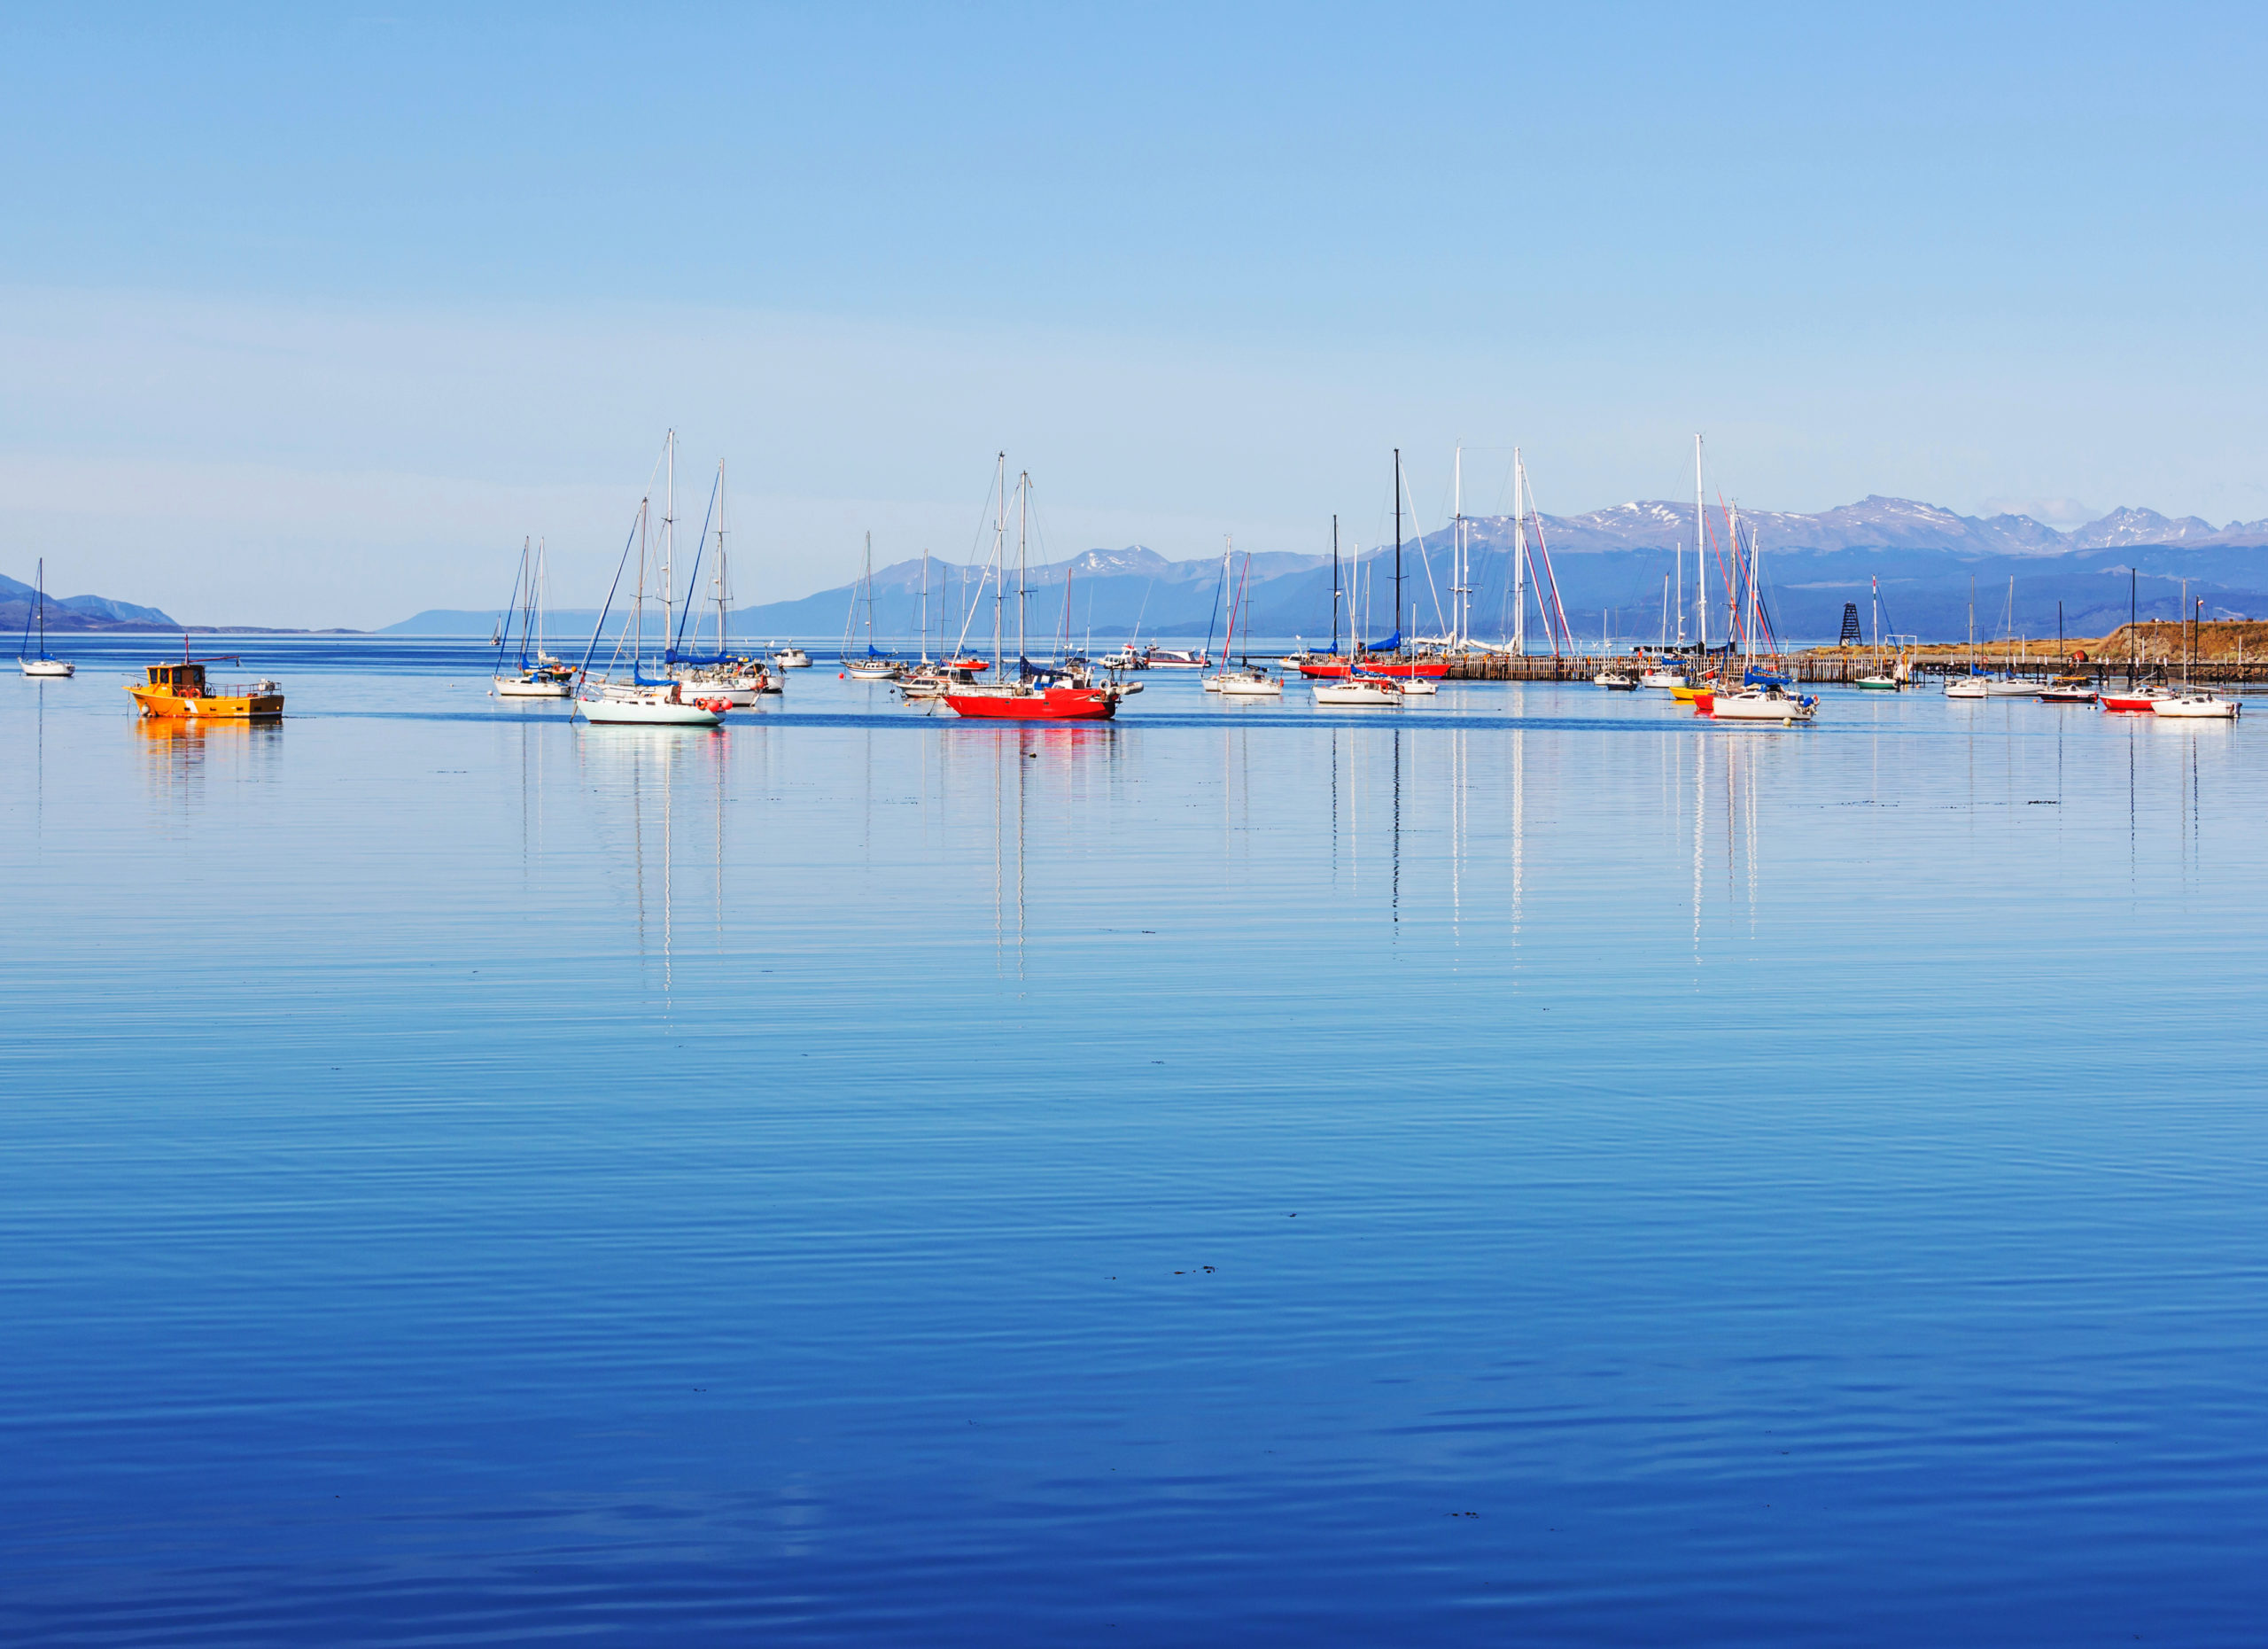 Sunny day in Ushuaia, is the capital of Tierra del Fuego province in Argentina.